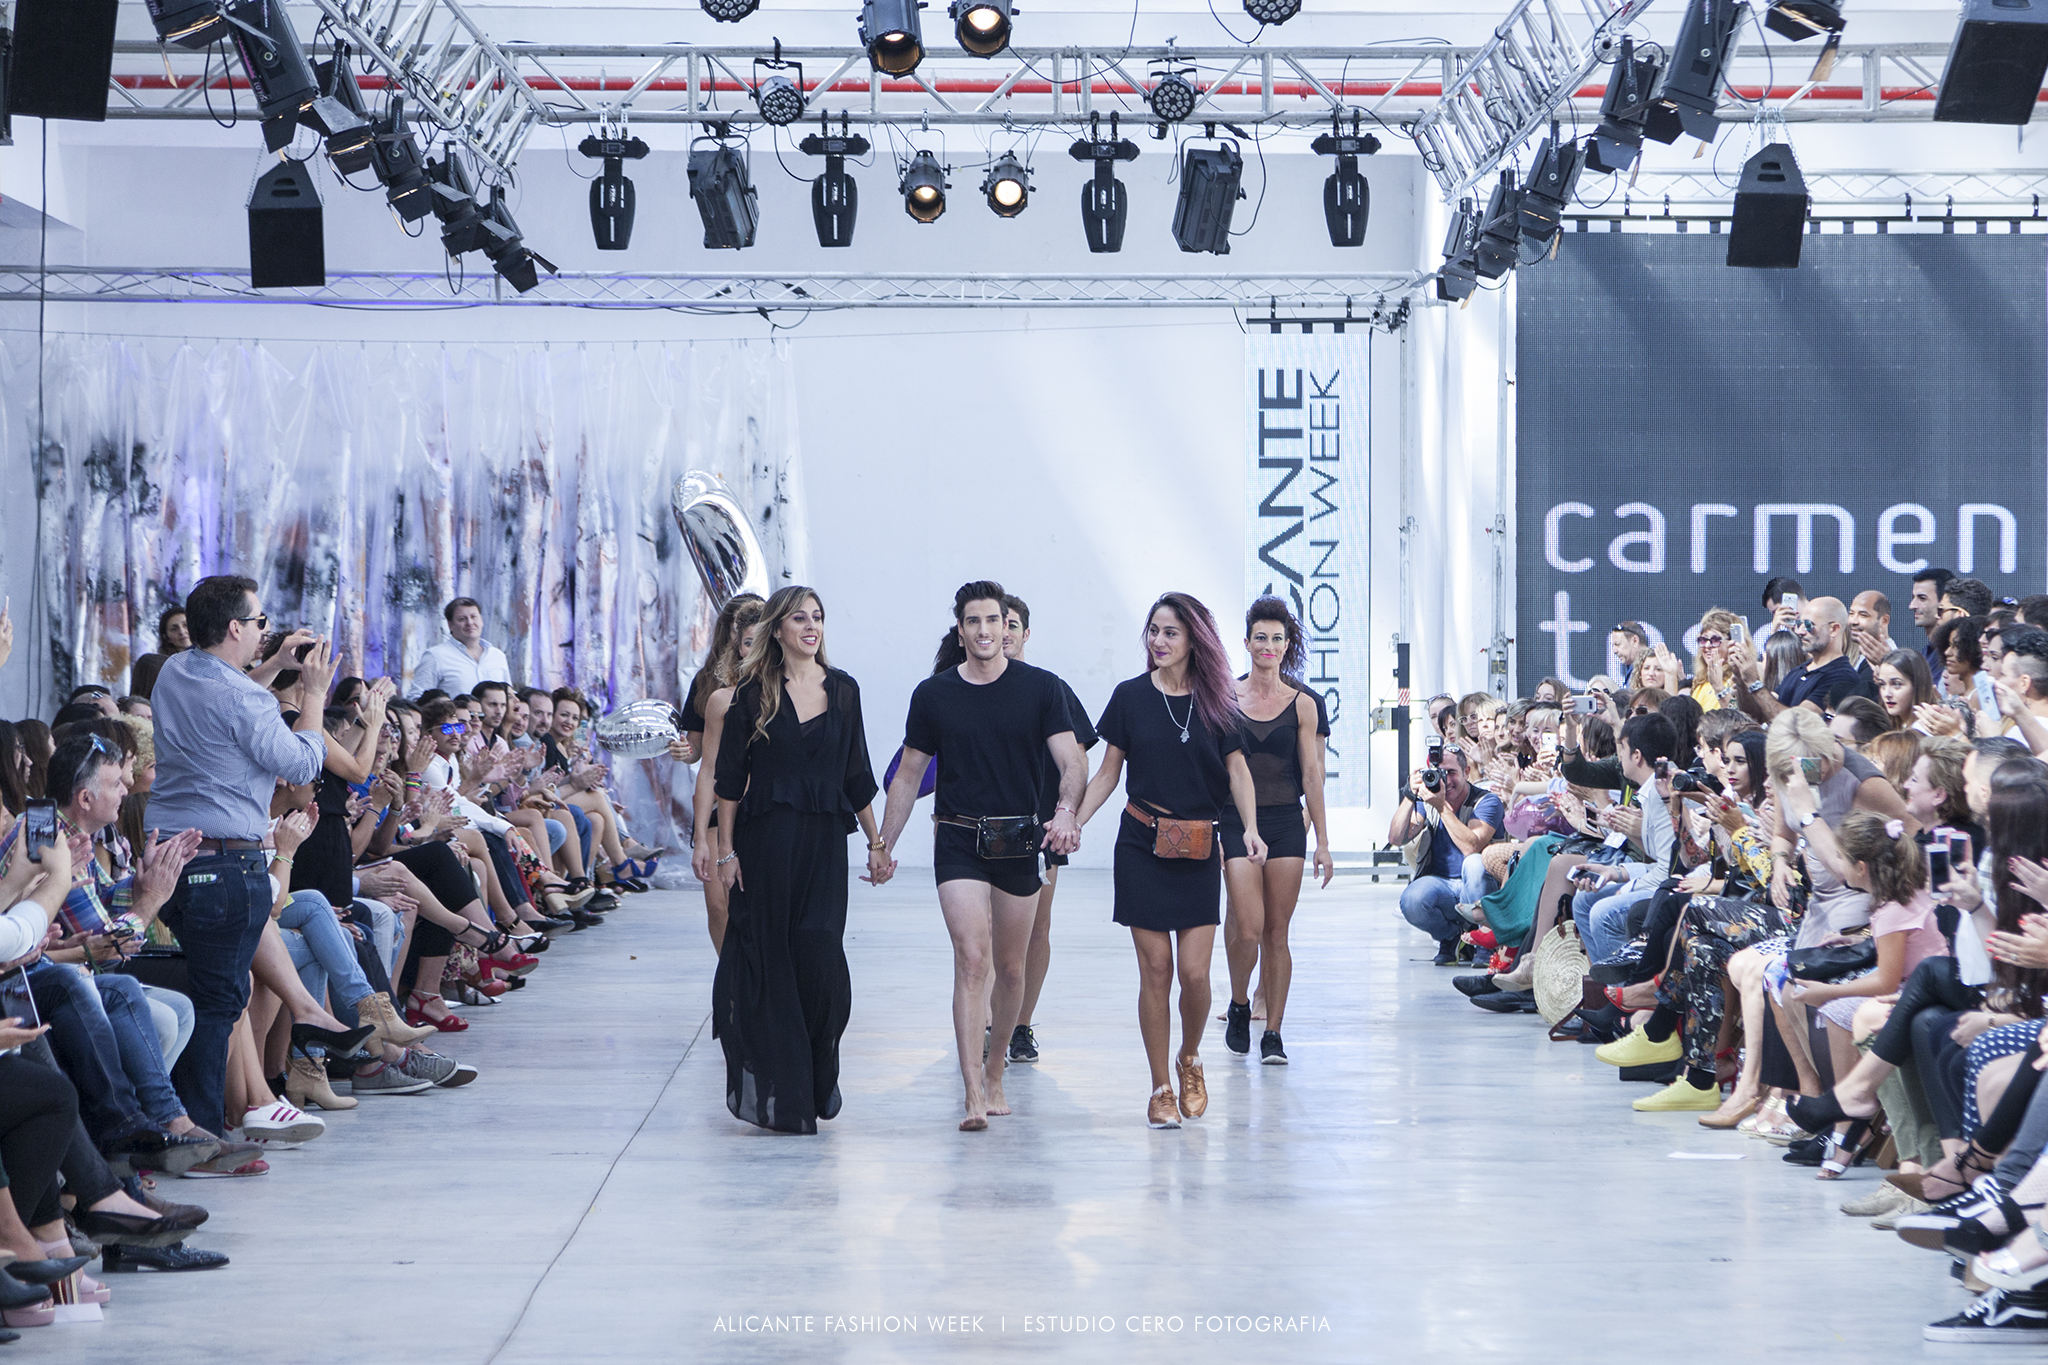 Carmen Tessa Alicante Fashion Week 2017